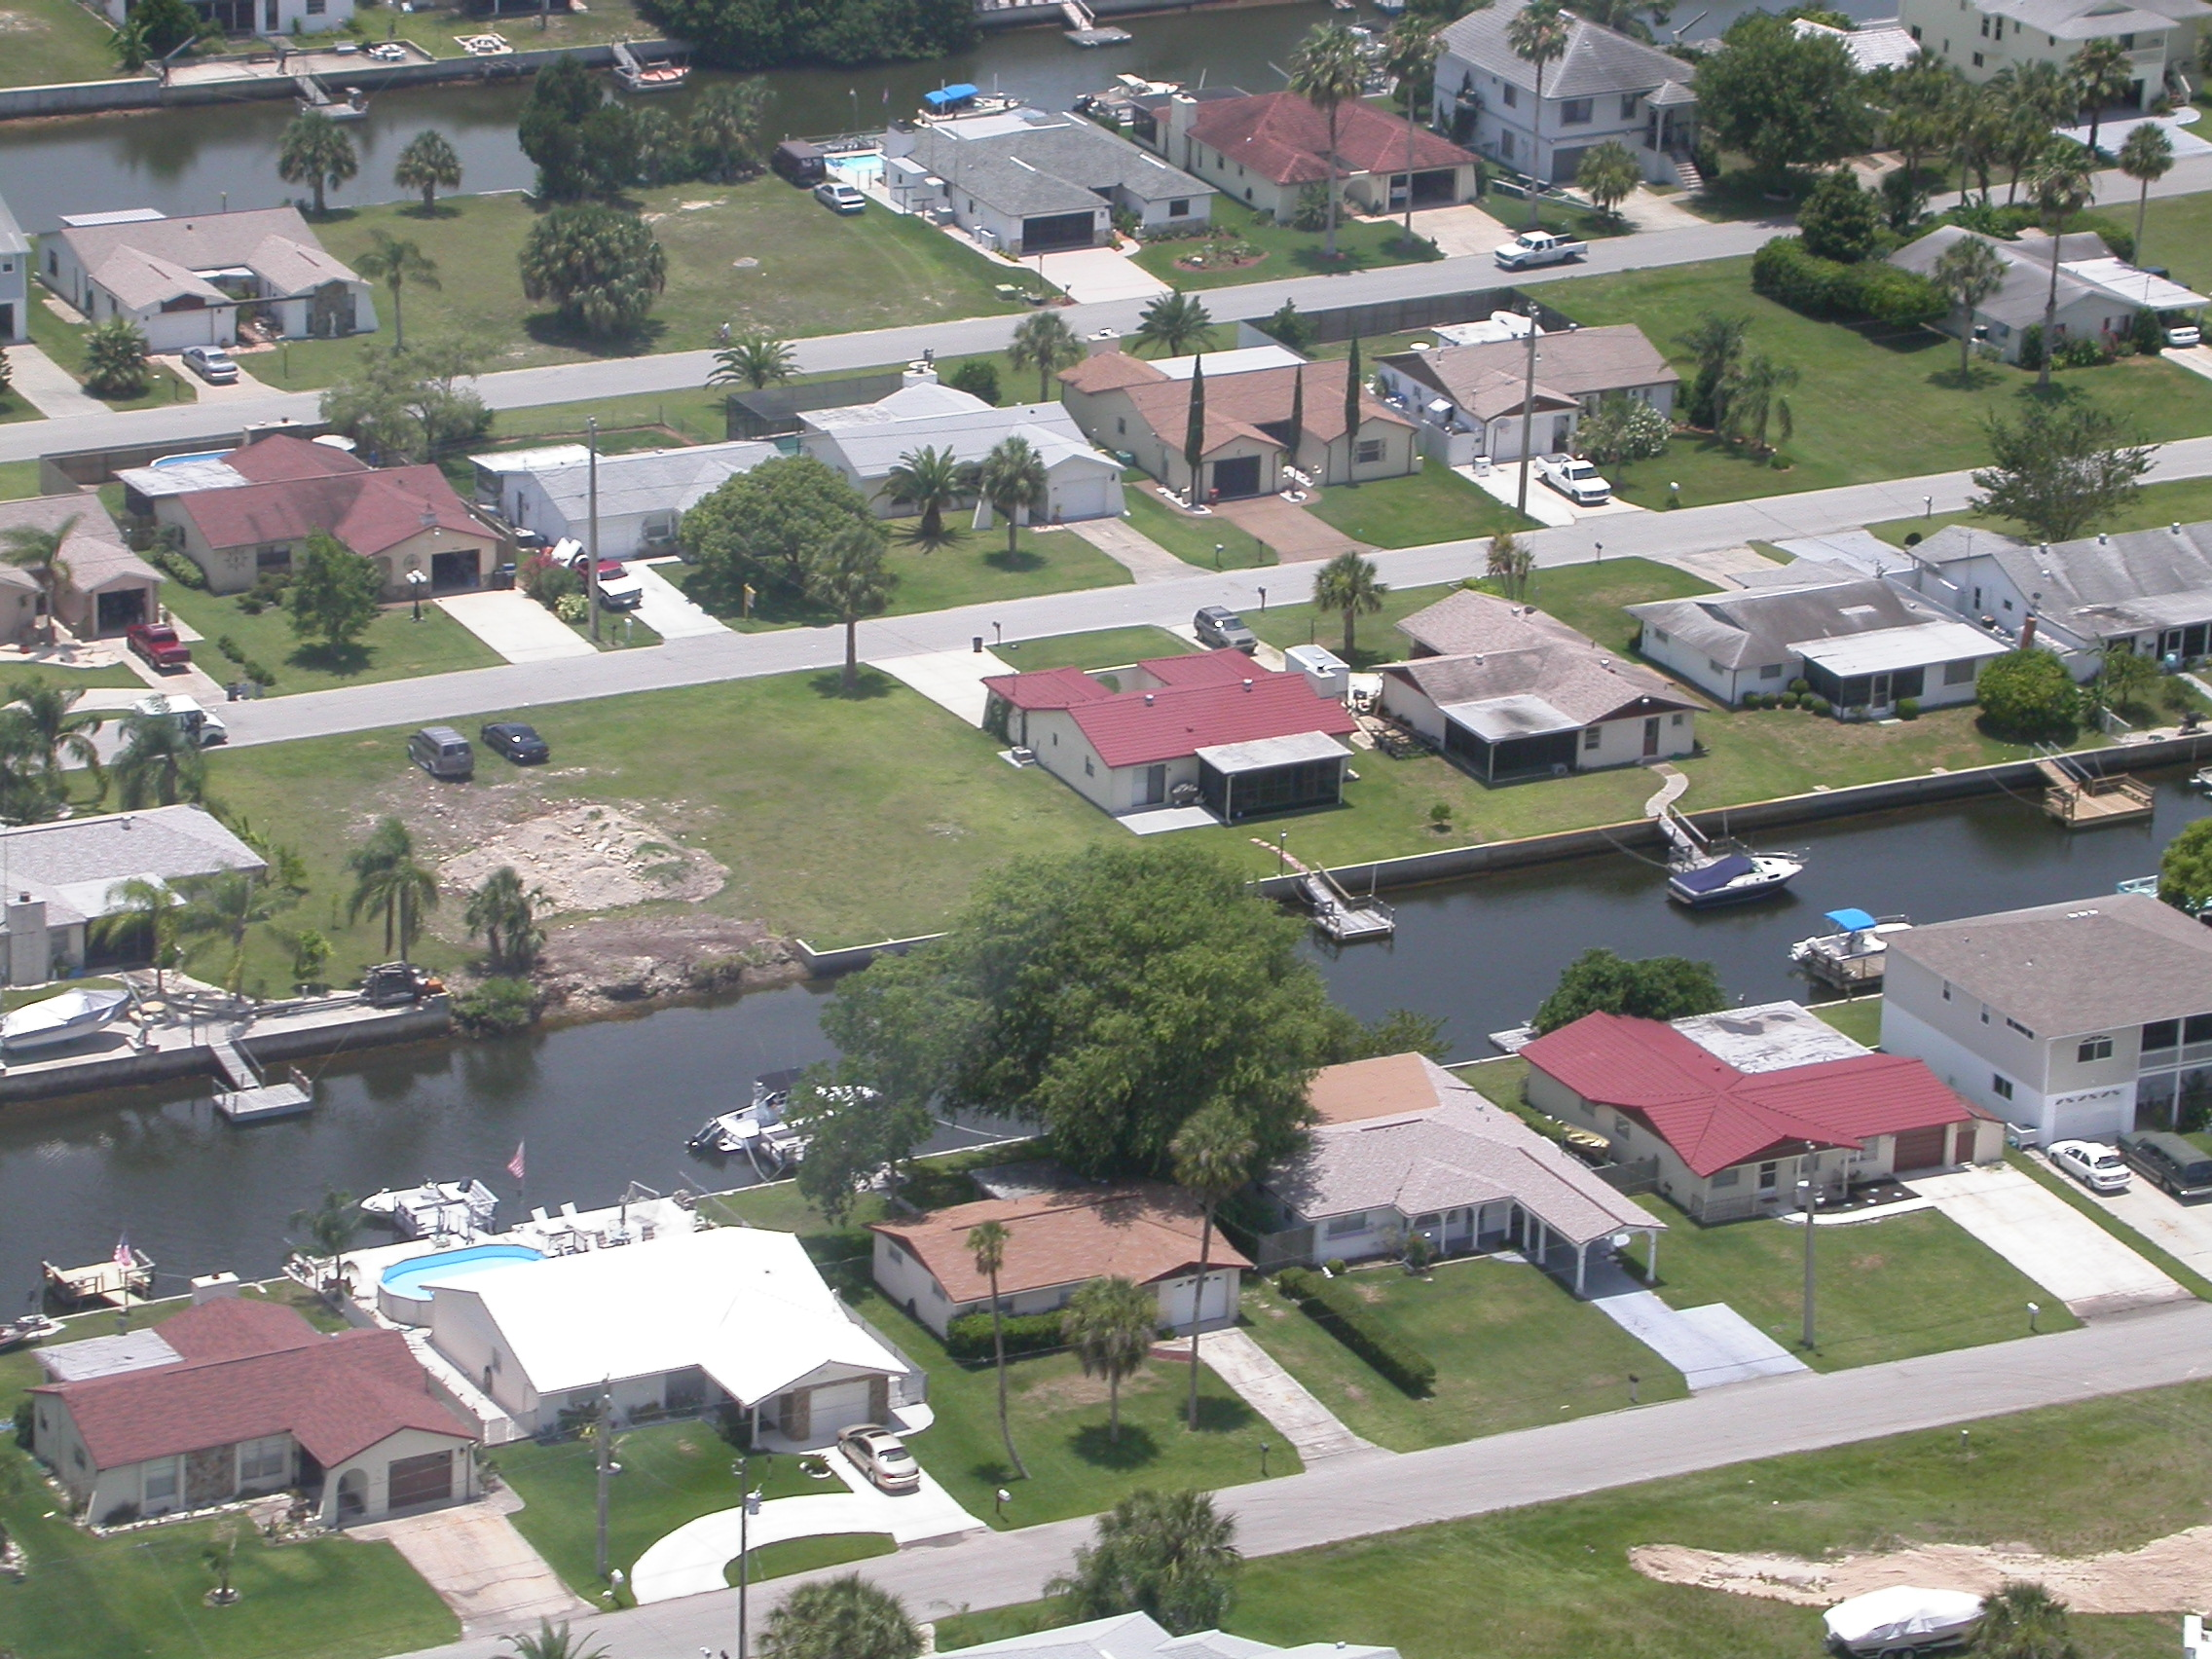 mobile homes clearwater fl with Canals on 19K2k3W uq90329 as well sunsetmhs besides Provisional List Of Registered Participants Unfccc 5a01aecdd64ab2913eb776d2 additionally Mobile Home For Sale Clearwater Fl Serendipity Mhp 35 also Wesley Chapel Subdivisions.